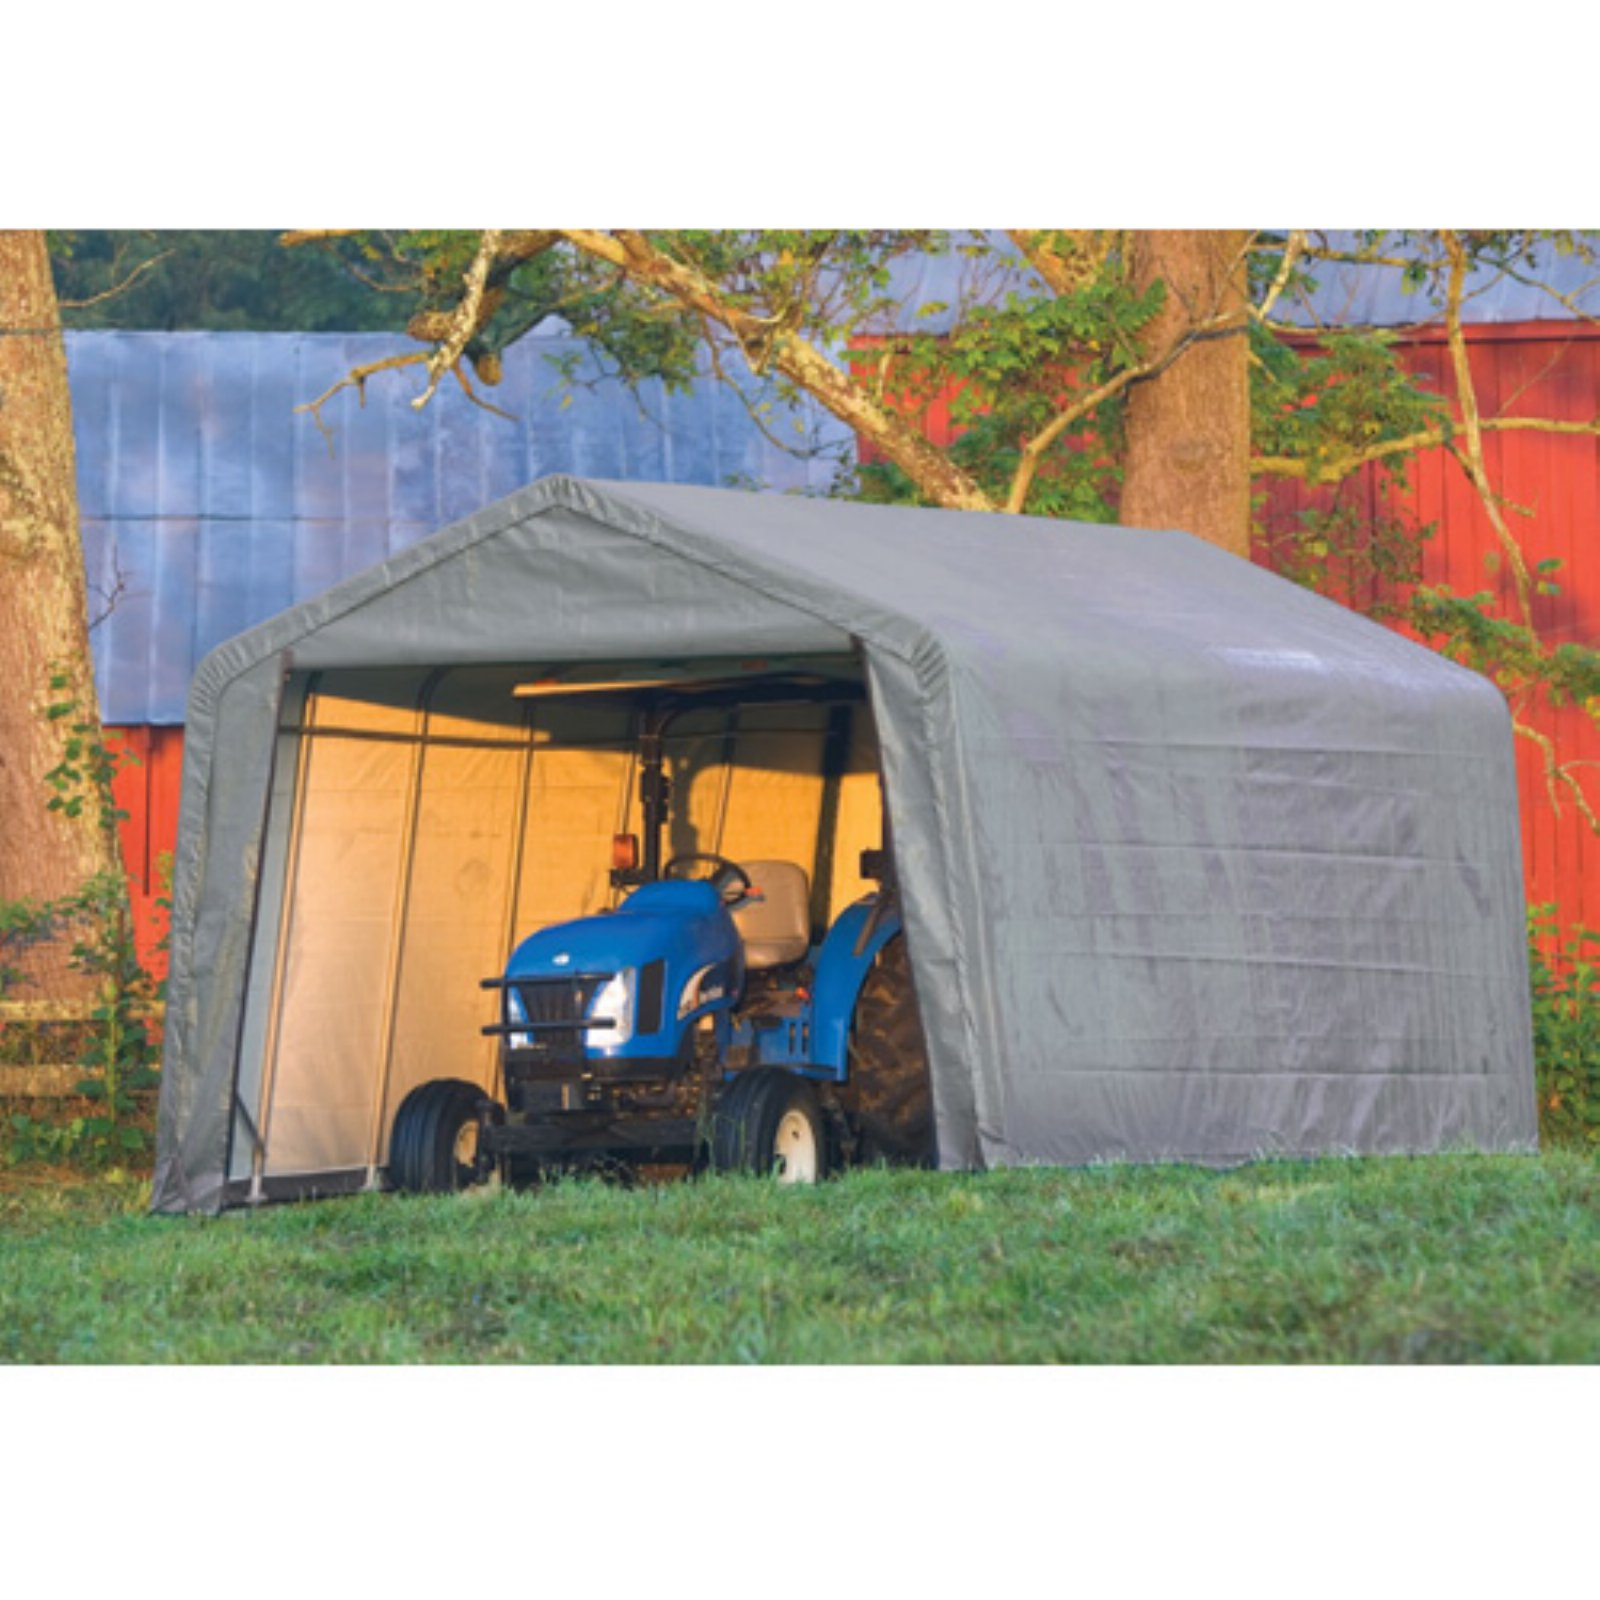 Shelterlogic 12' x 24' x 8' Peak Style Shelter